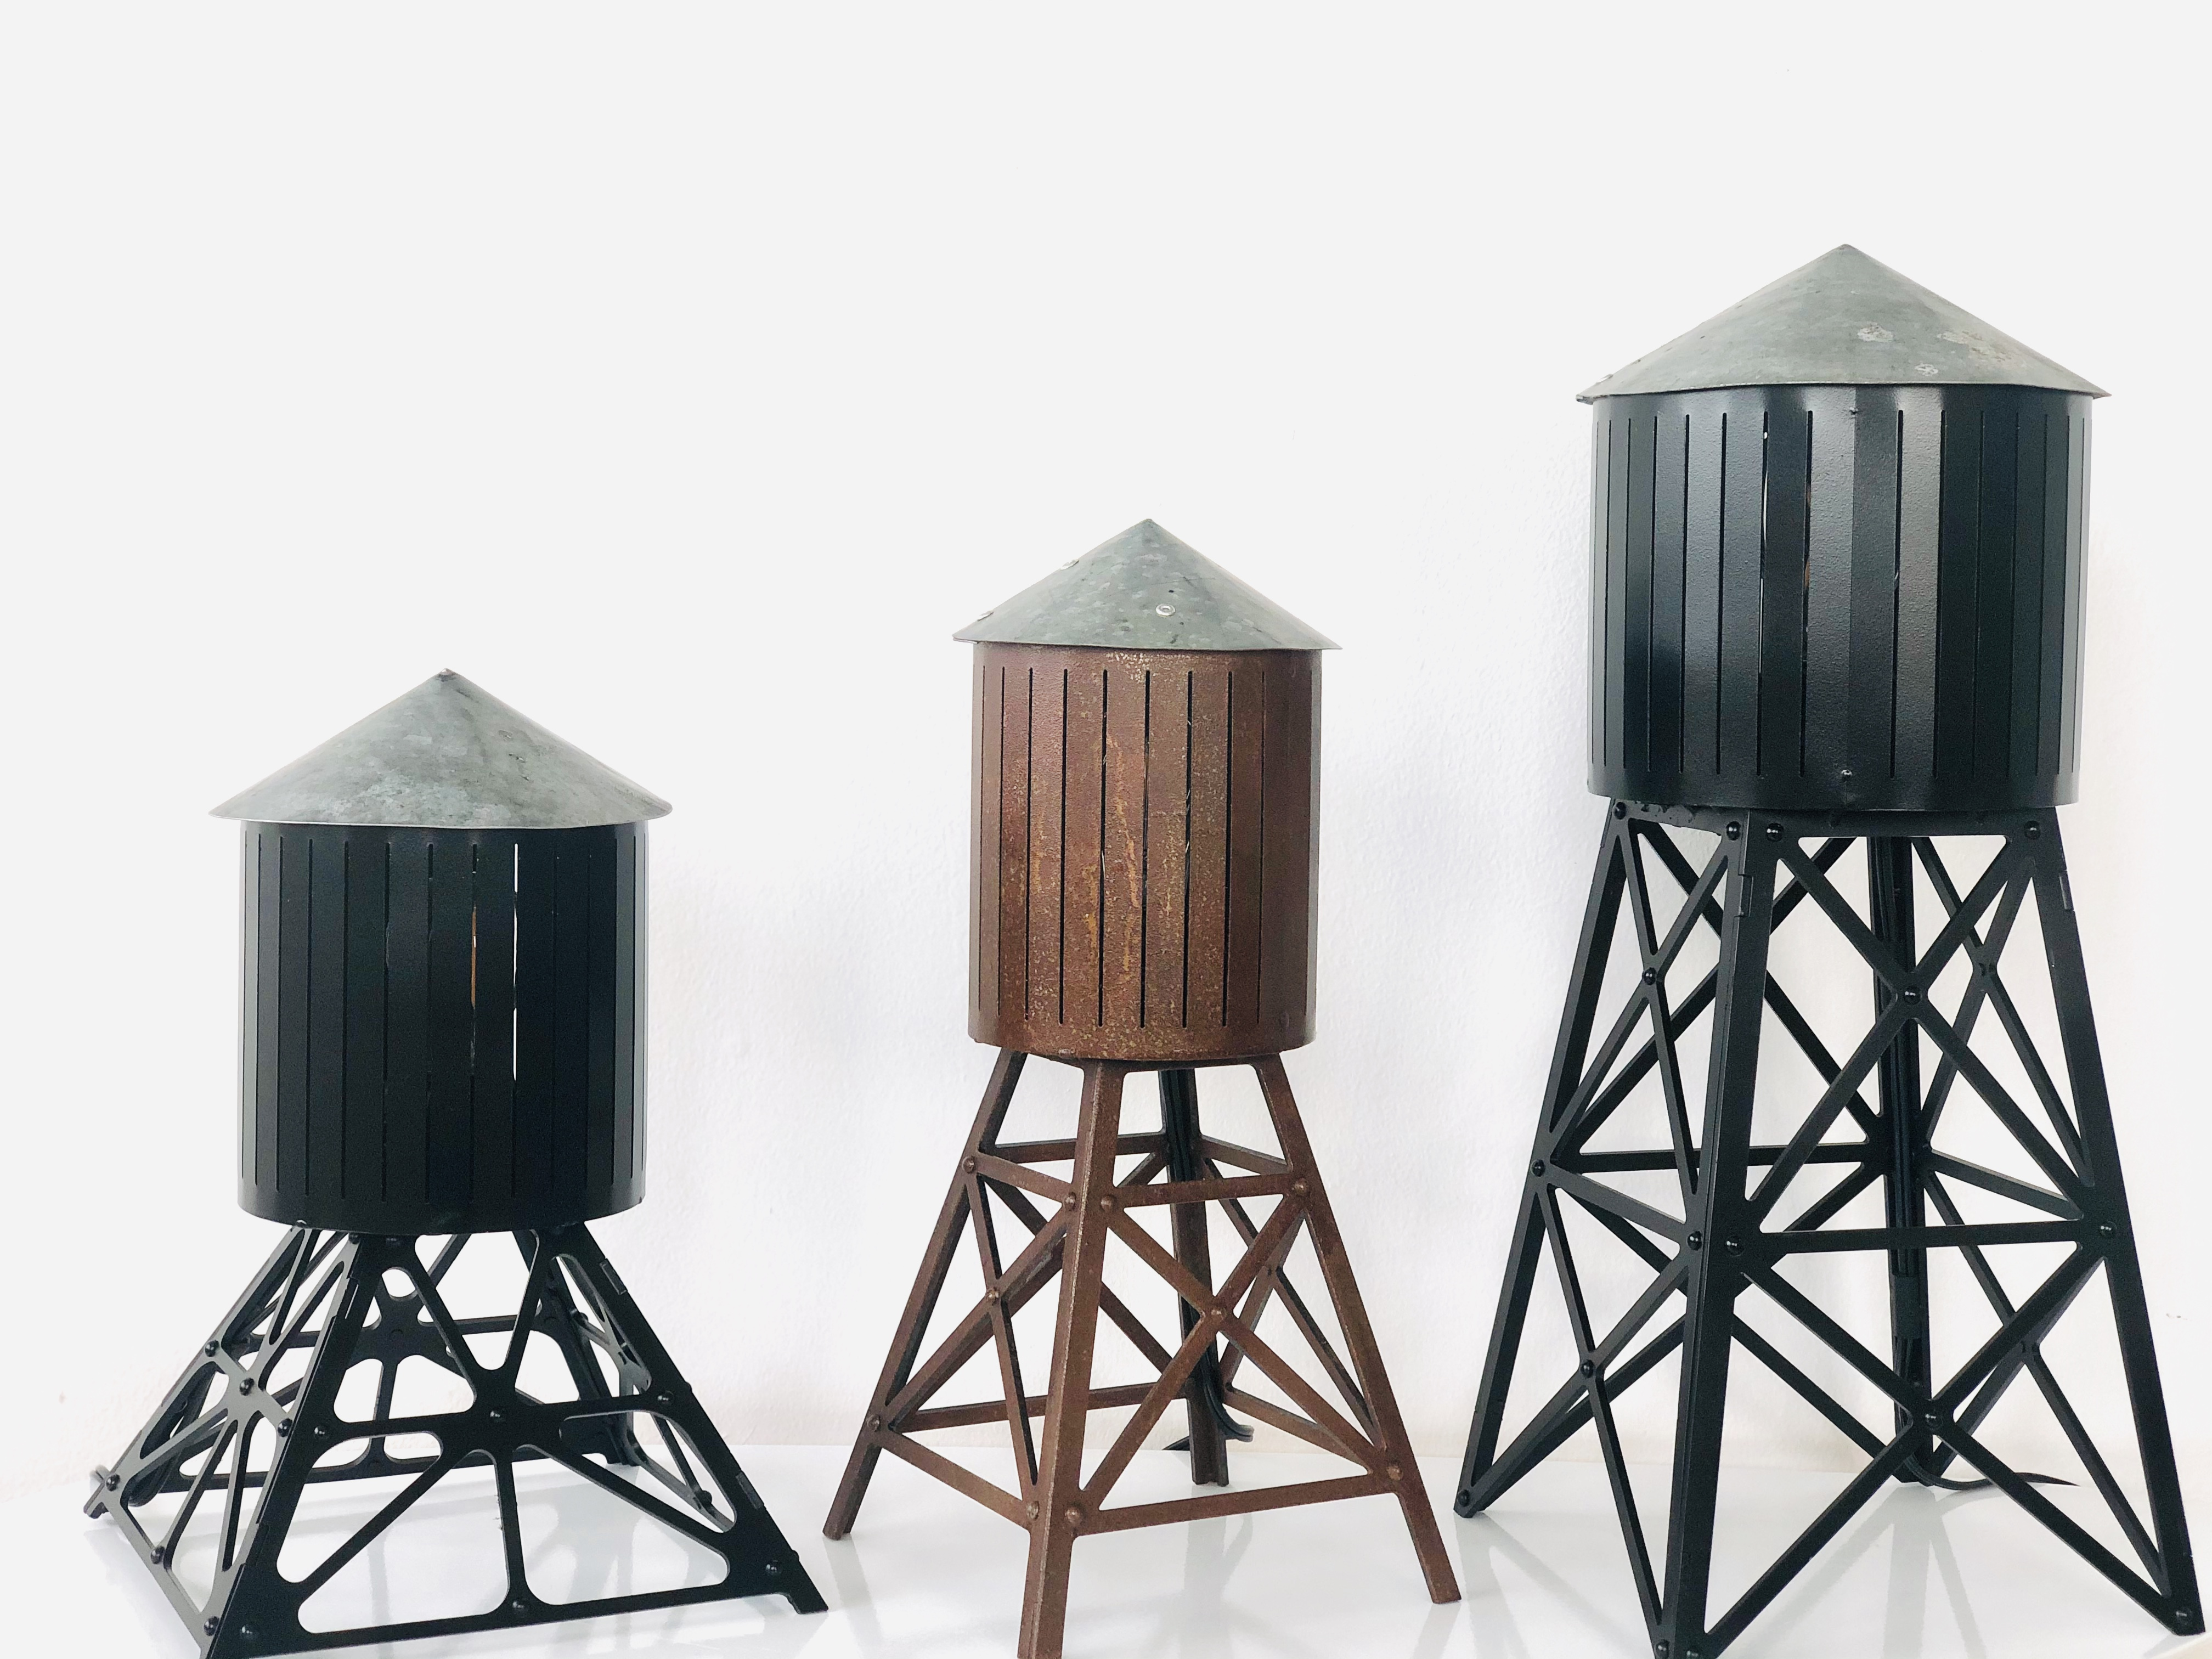 Water towers table lamps